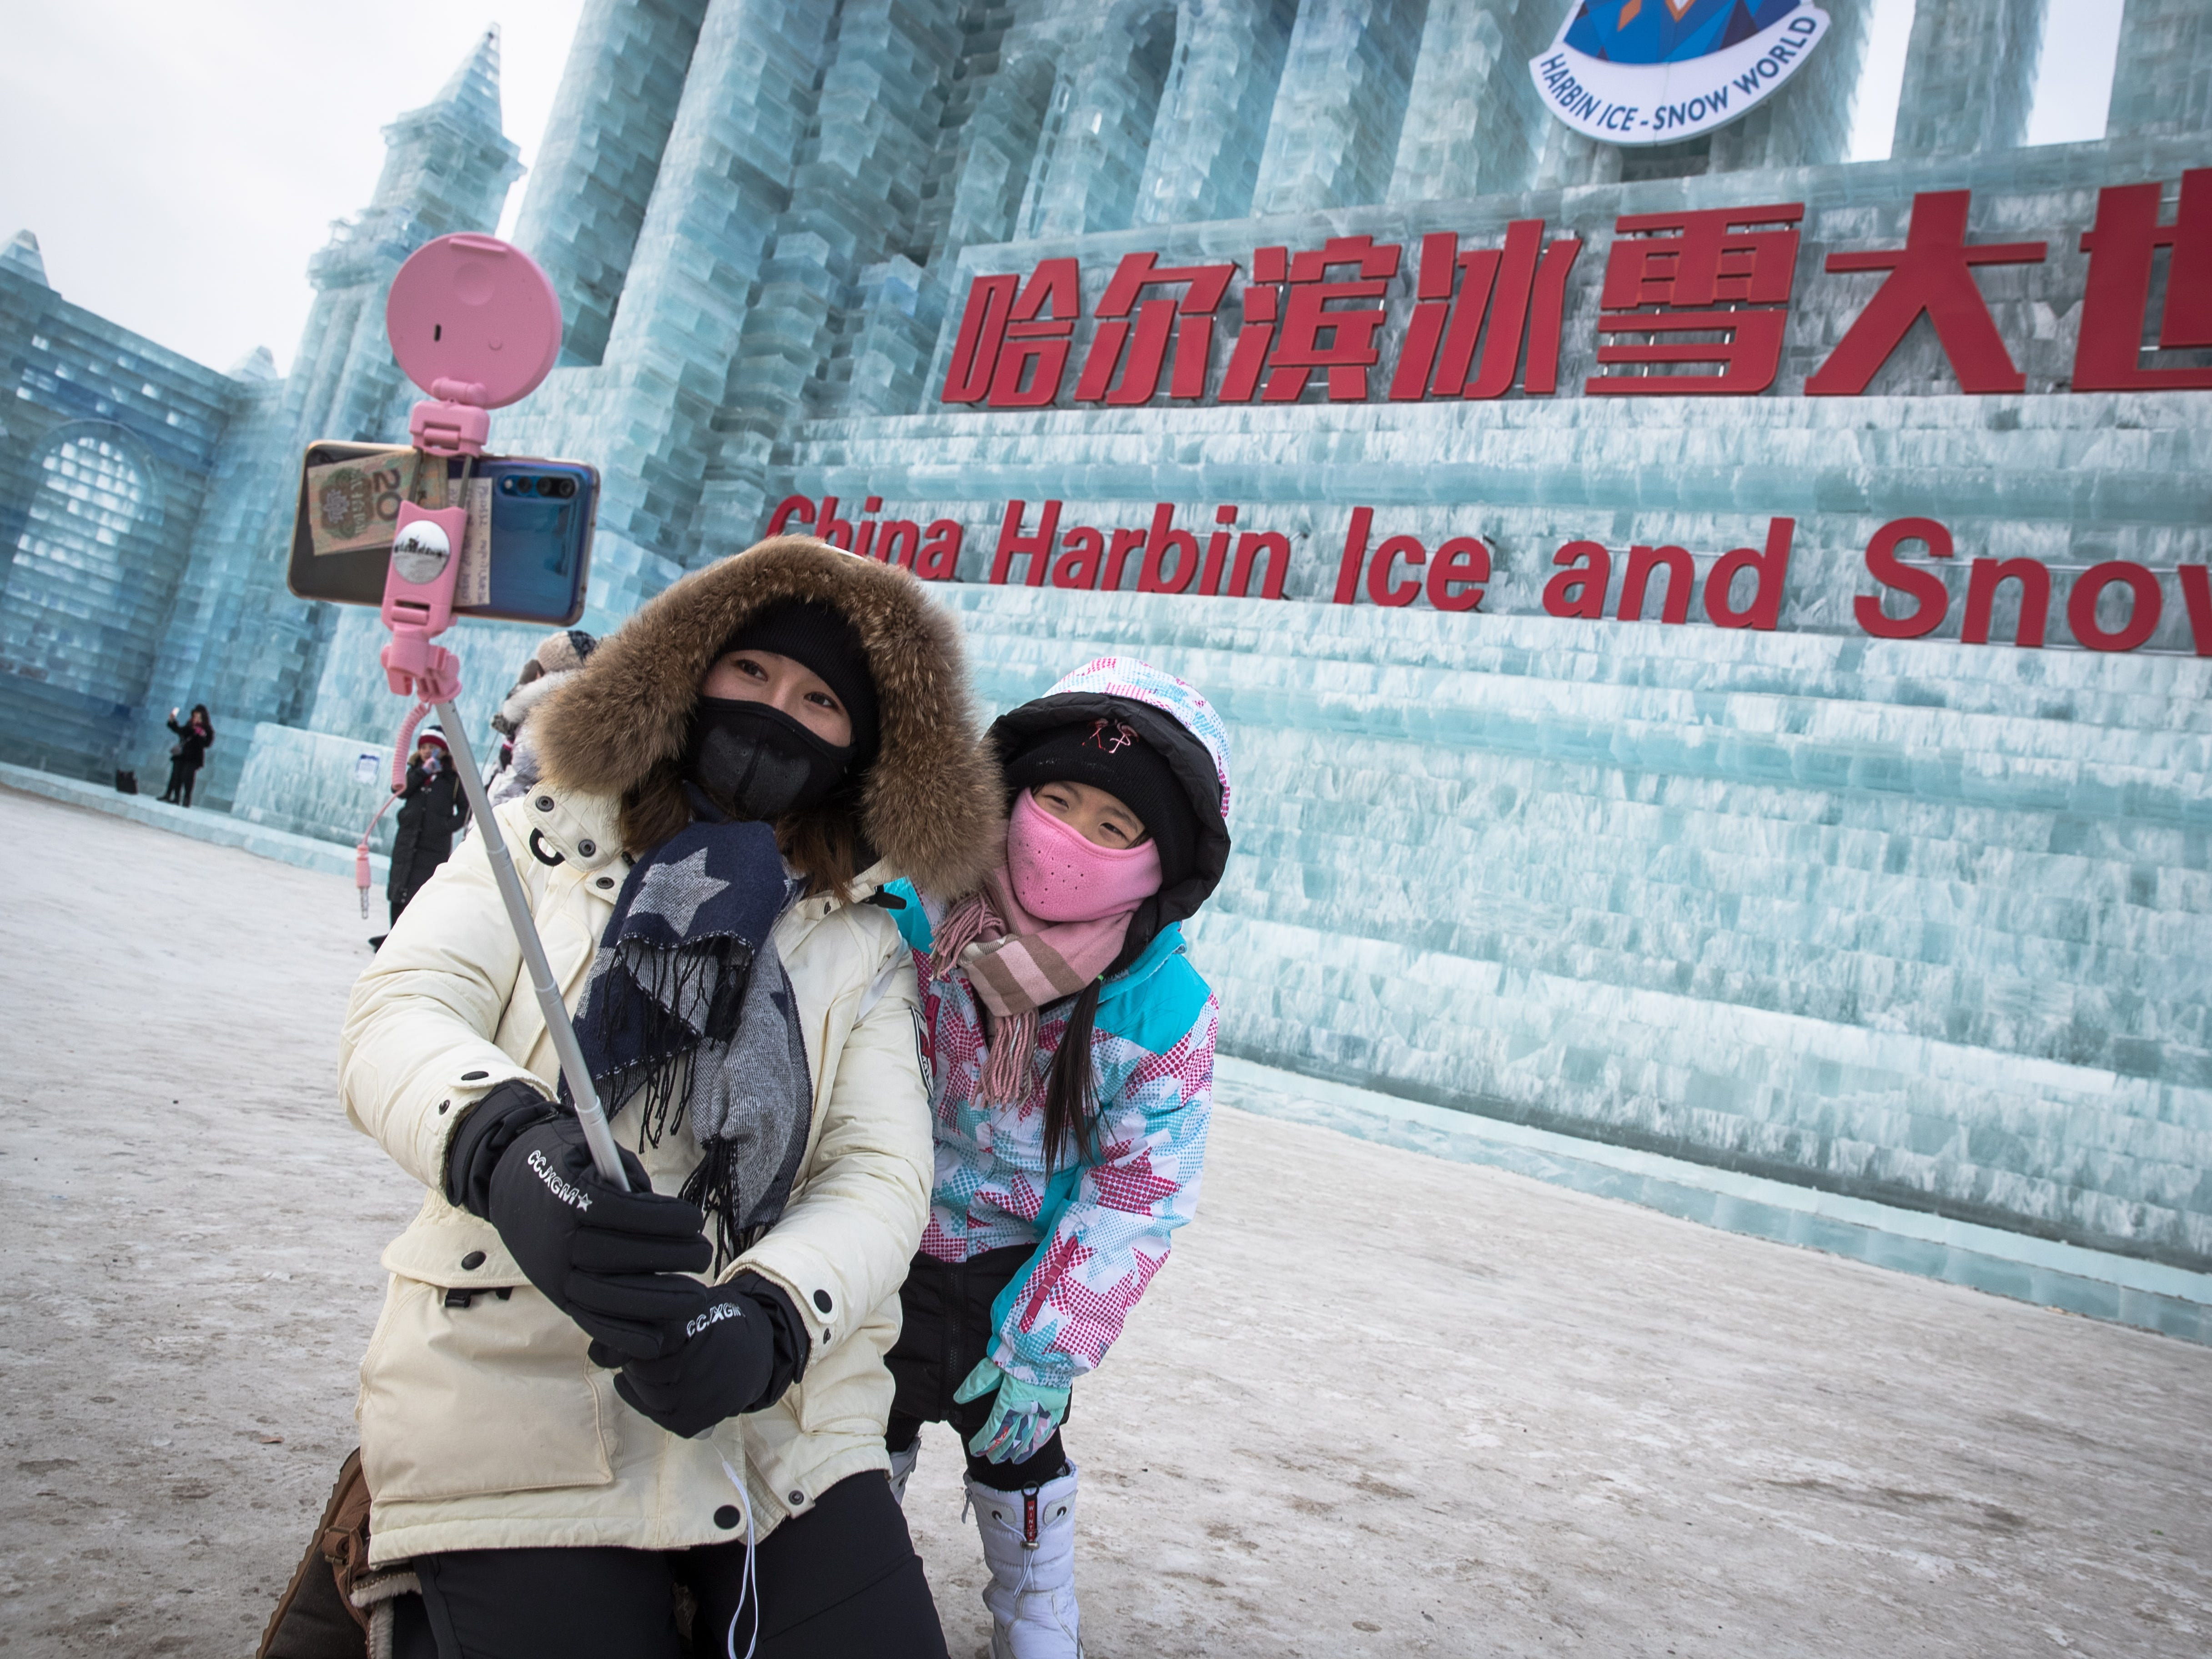 These two take a selfi in front of the ice sculptures.